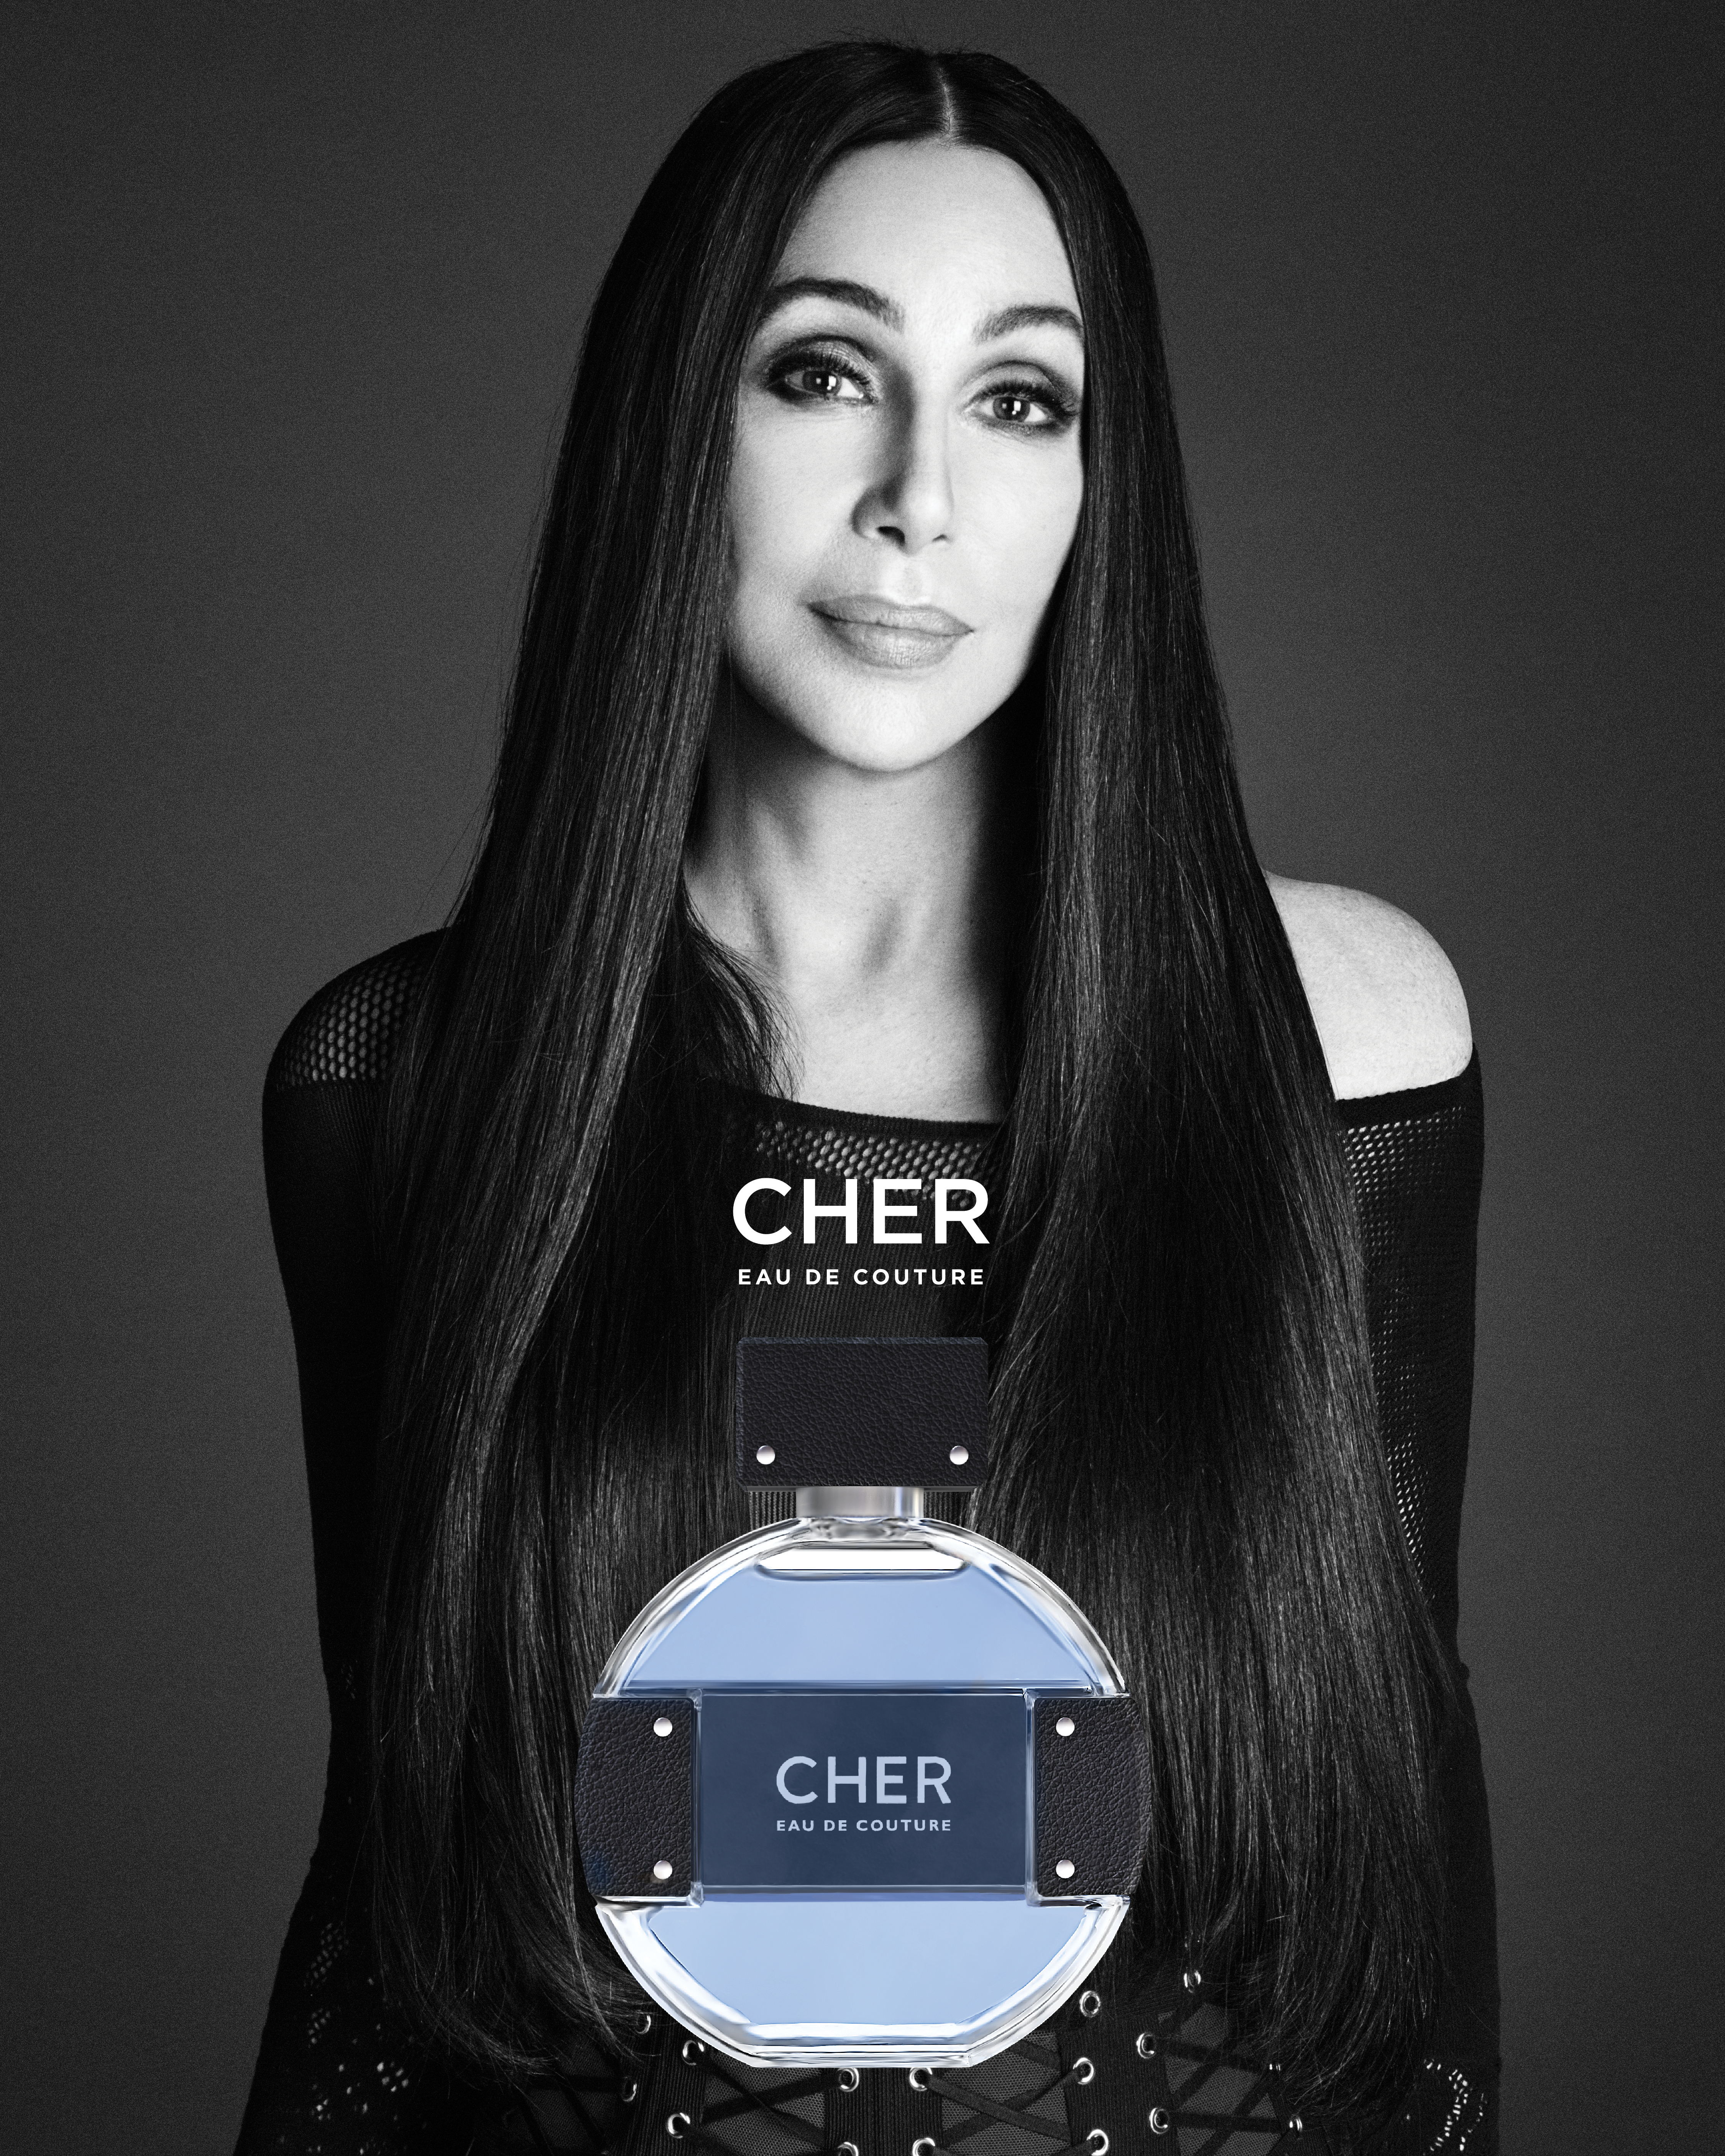 Fotos De Cher exclusive new cher campaign released for signature fragrance